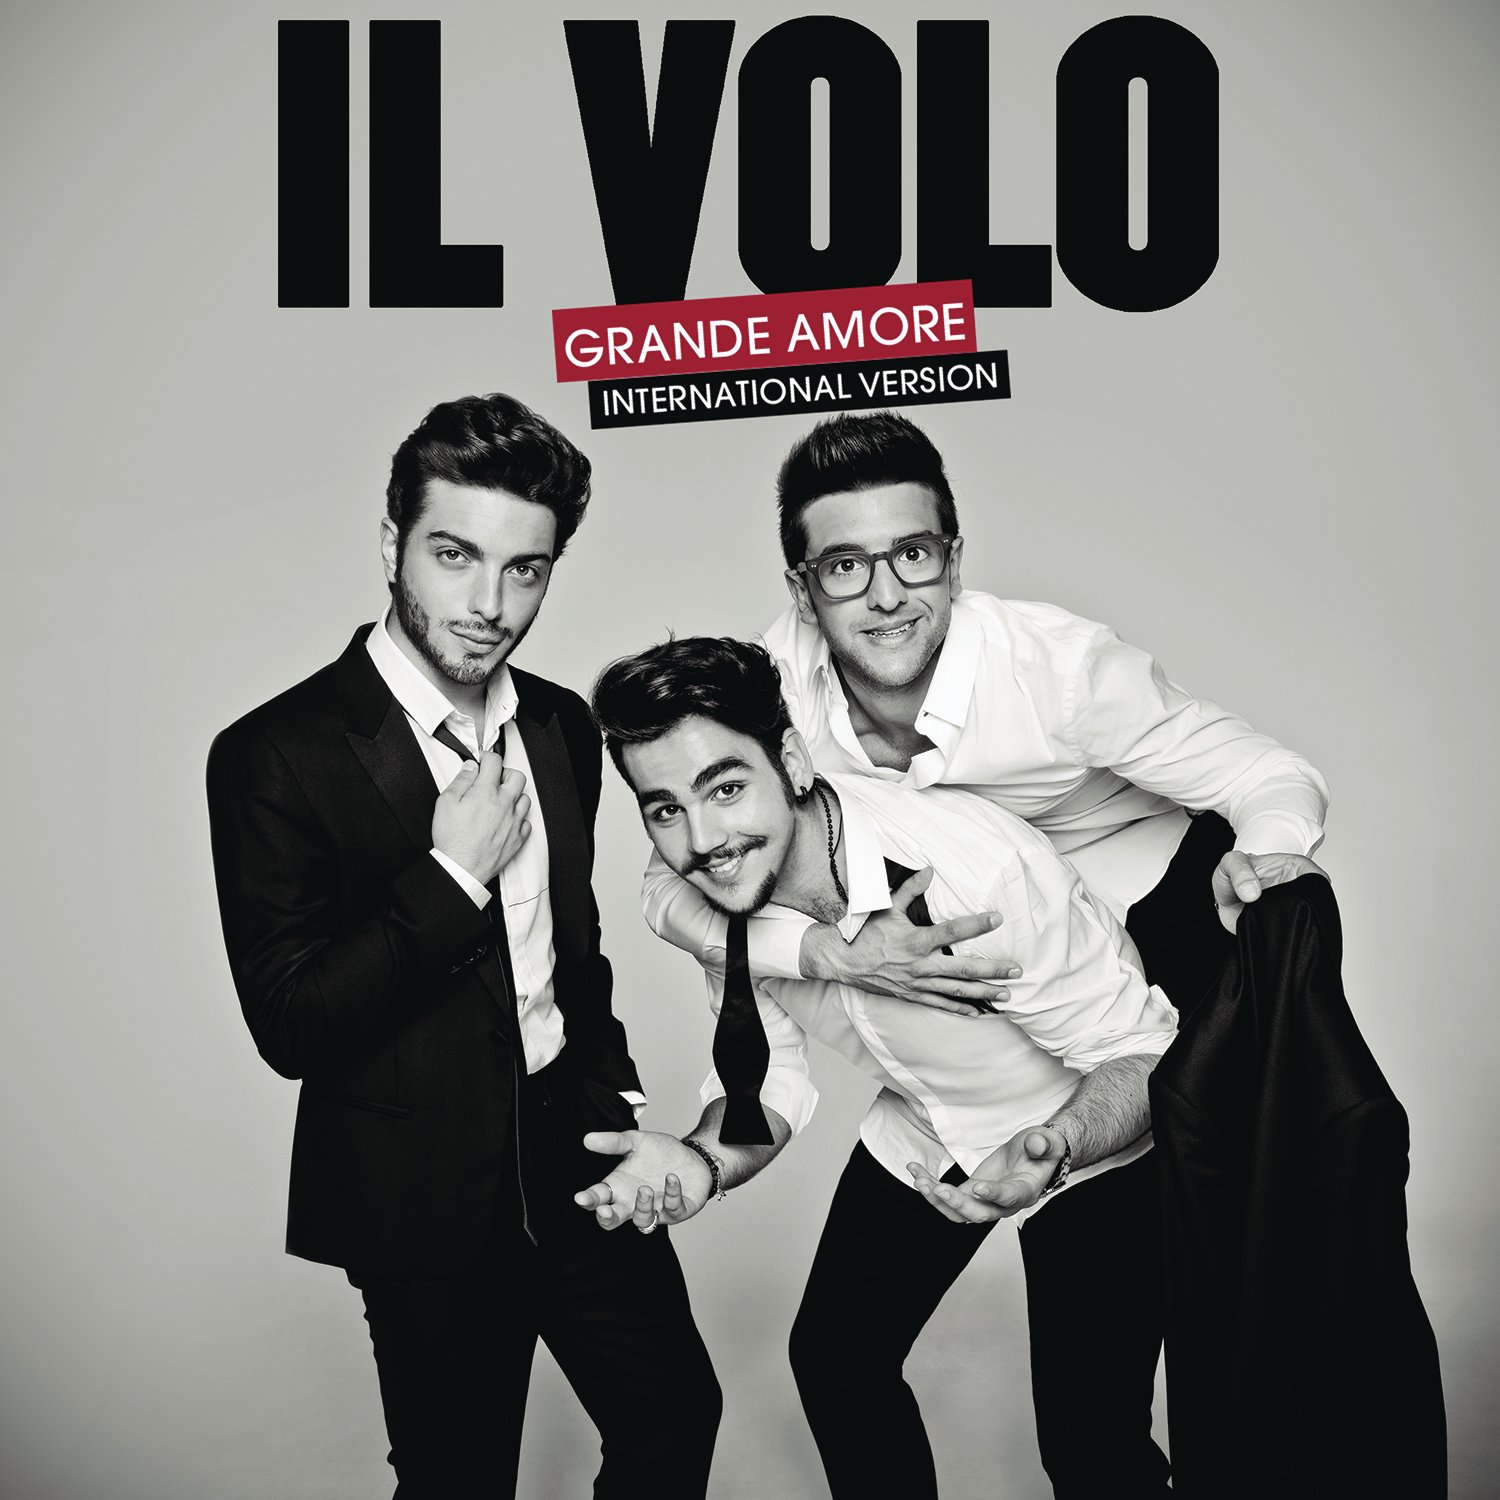 Grande amore by Sony Music